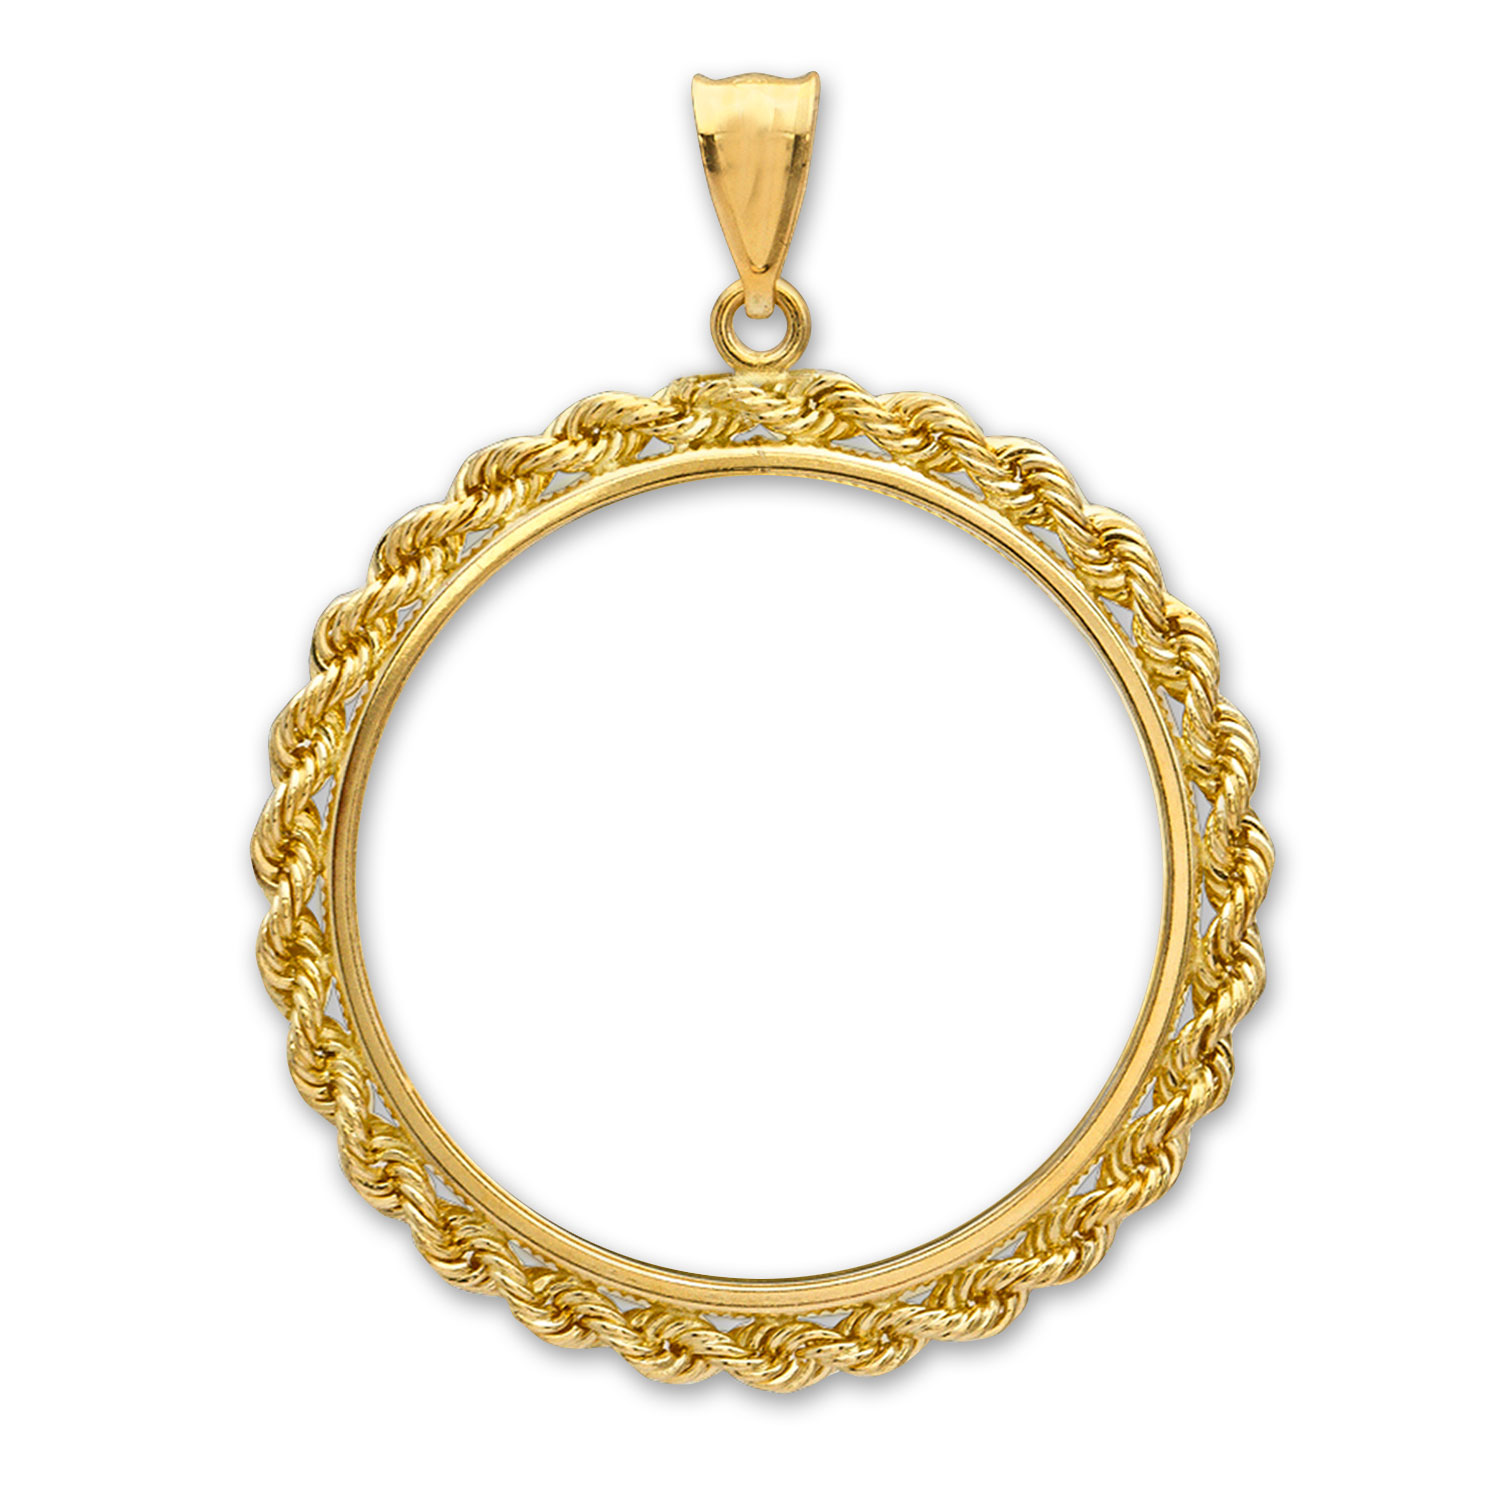 14K Gold Prong Rope Polished Coin Bezel - 27 millimeter